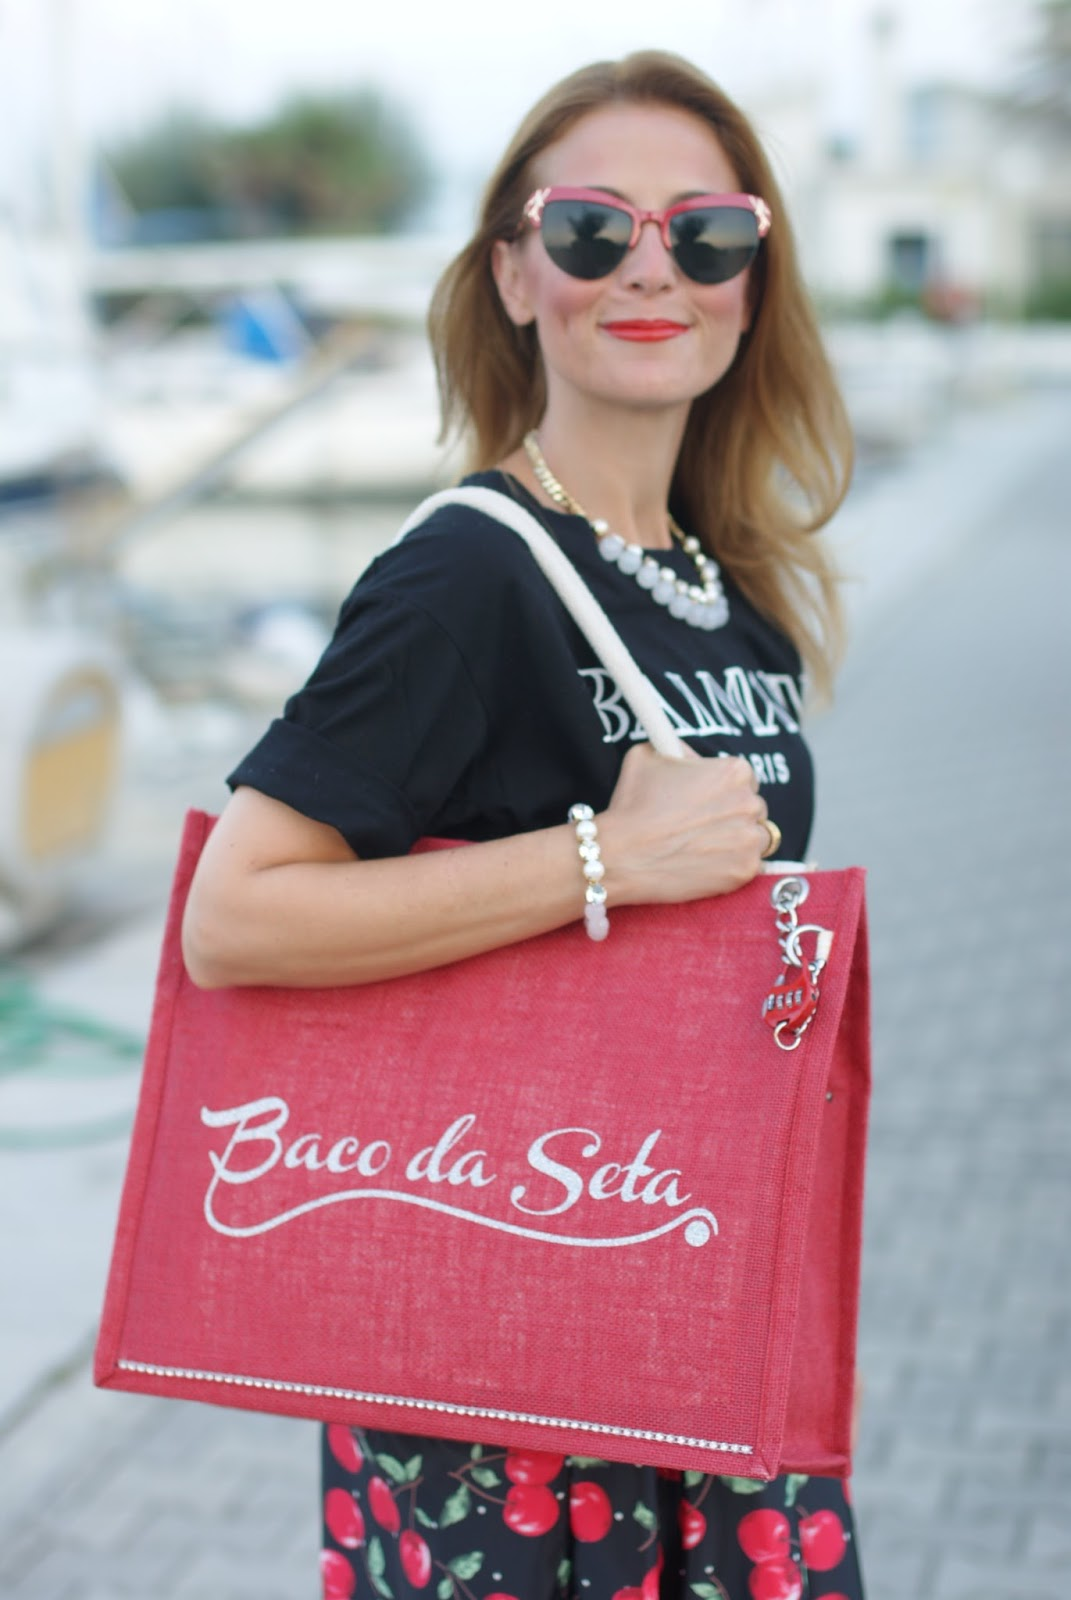 Baco da Seta Ideas anti-theft bag on Fashion and Cookies fashion blog